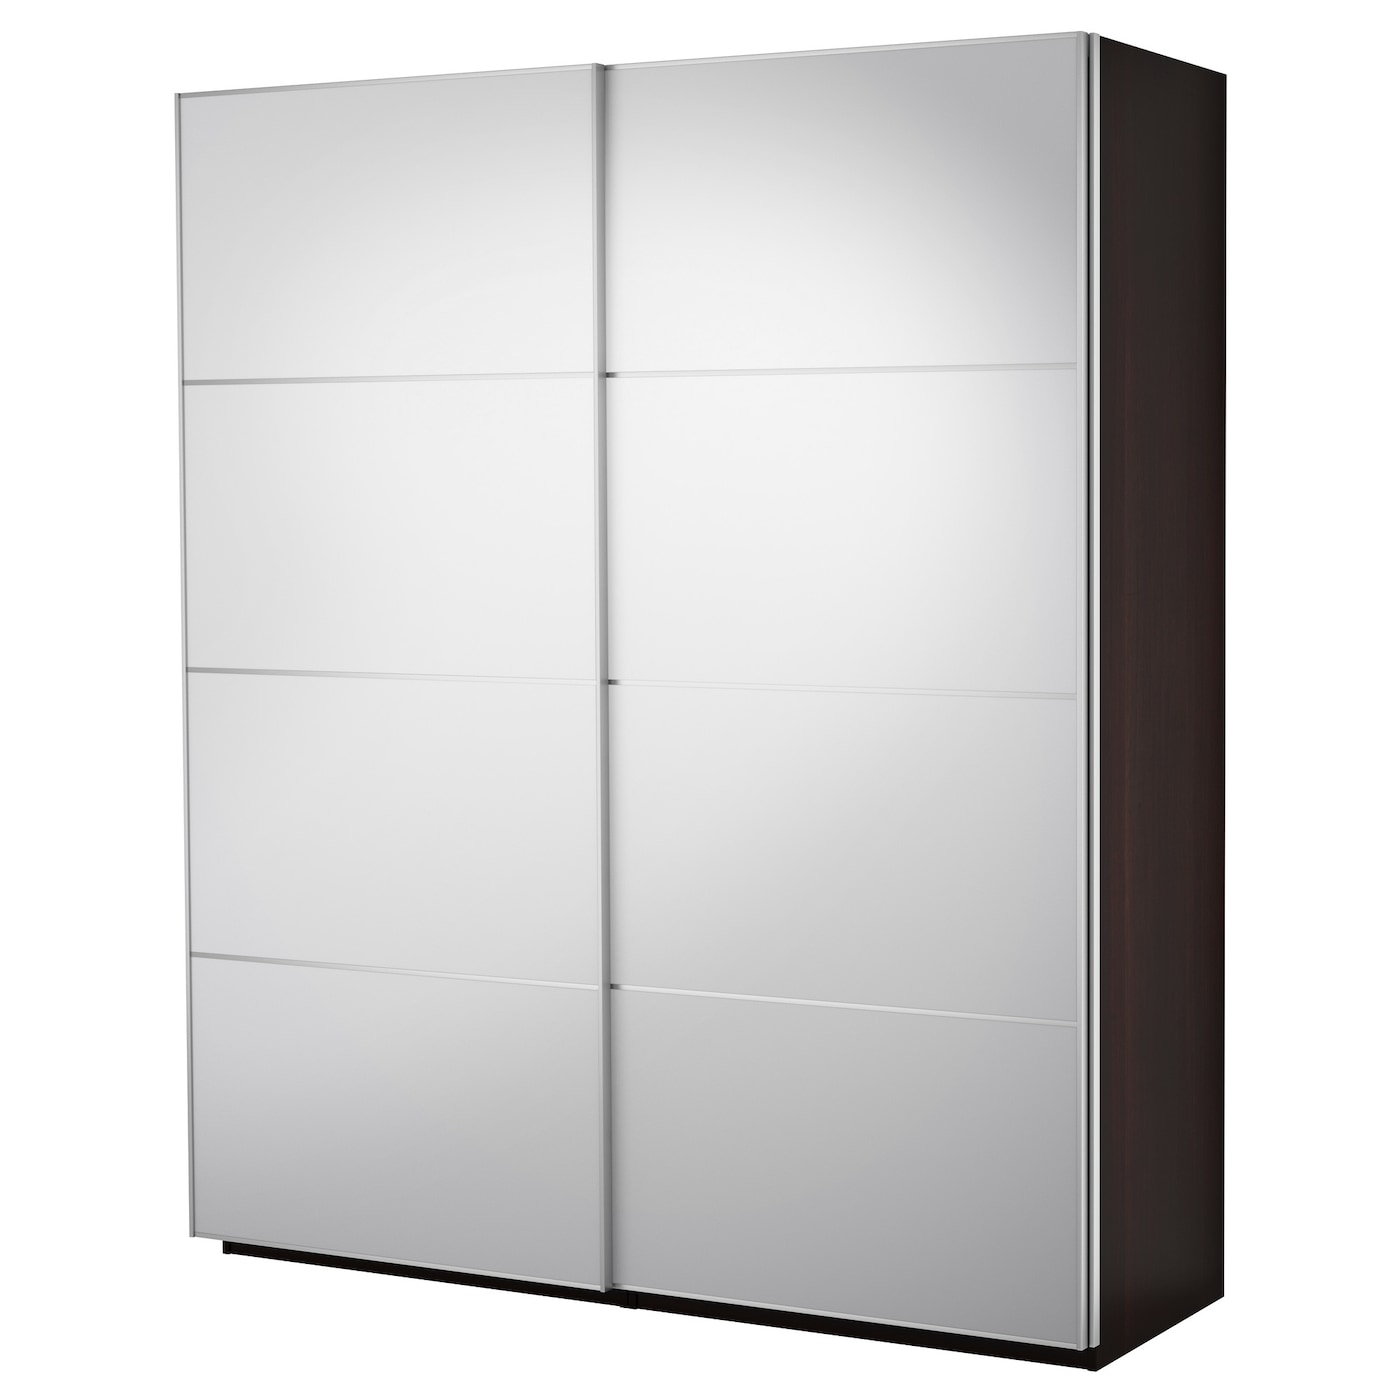 Pax wardrobe with sliding doors black brown auli mirror glass 200x66x236 cm ikea - Ikea armarios modulares ...